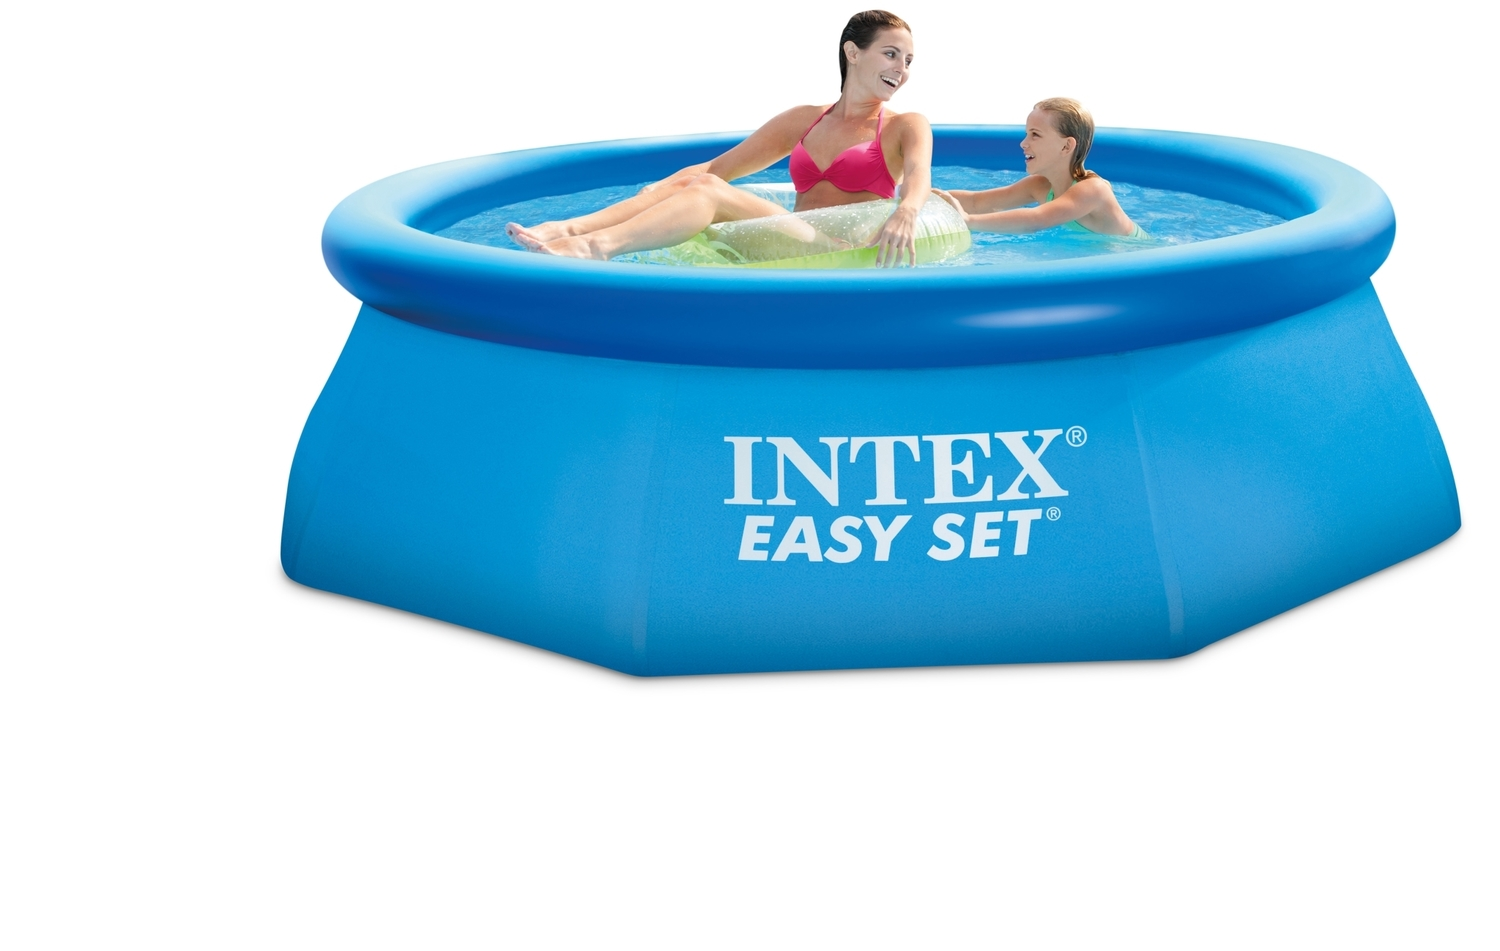 intex easy set pool ohne pumpe verschiedene gr en. Black Bedroom Furniture Sets. Home Design Ideas